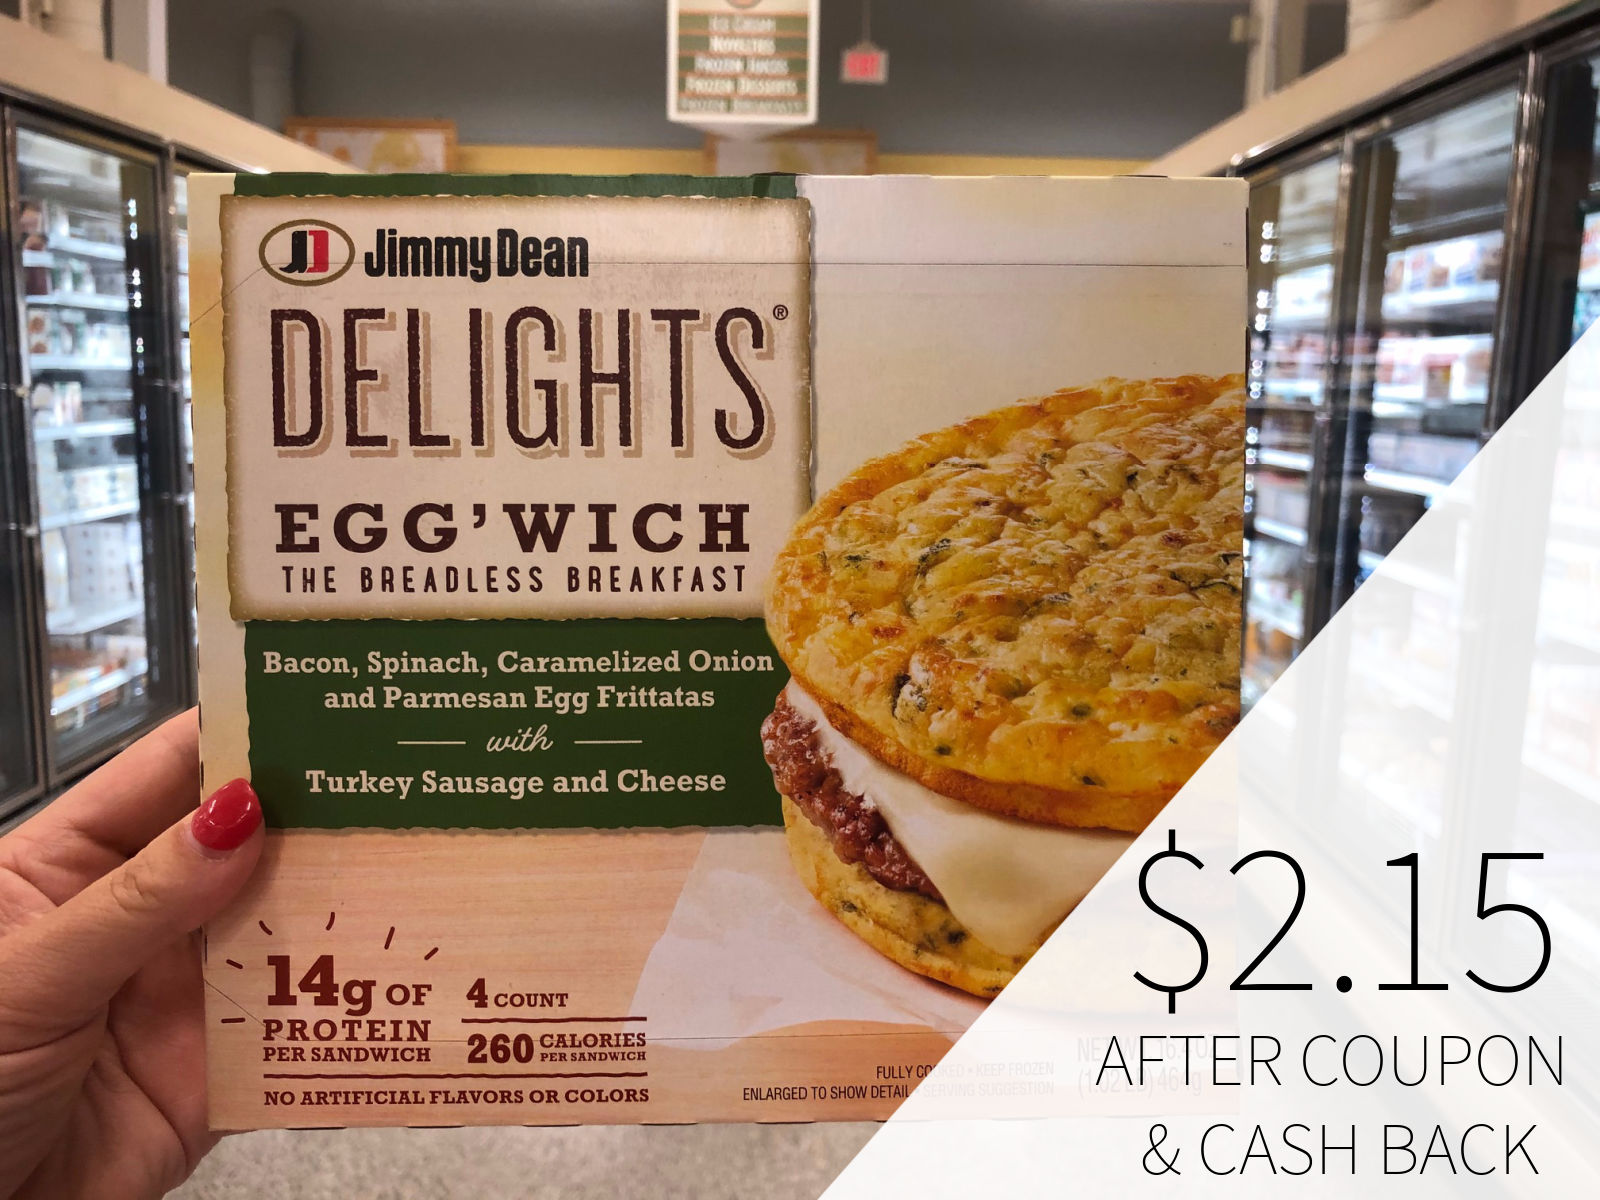 New Jimmy Dean Coupons For The Publix Sale - Jimmy Dean Delights Just $2.65 on I Heart Publix